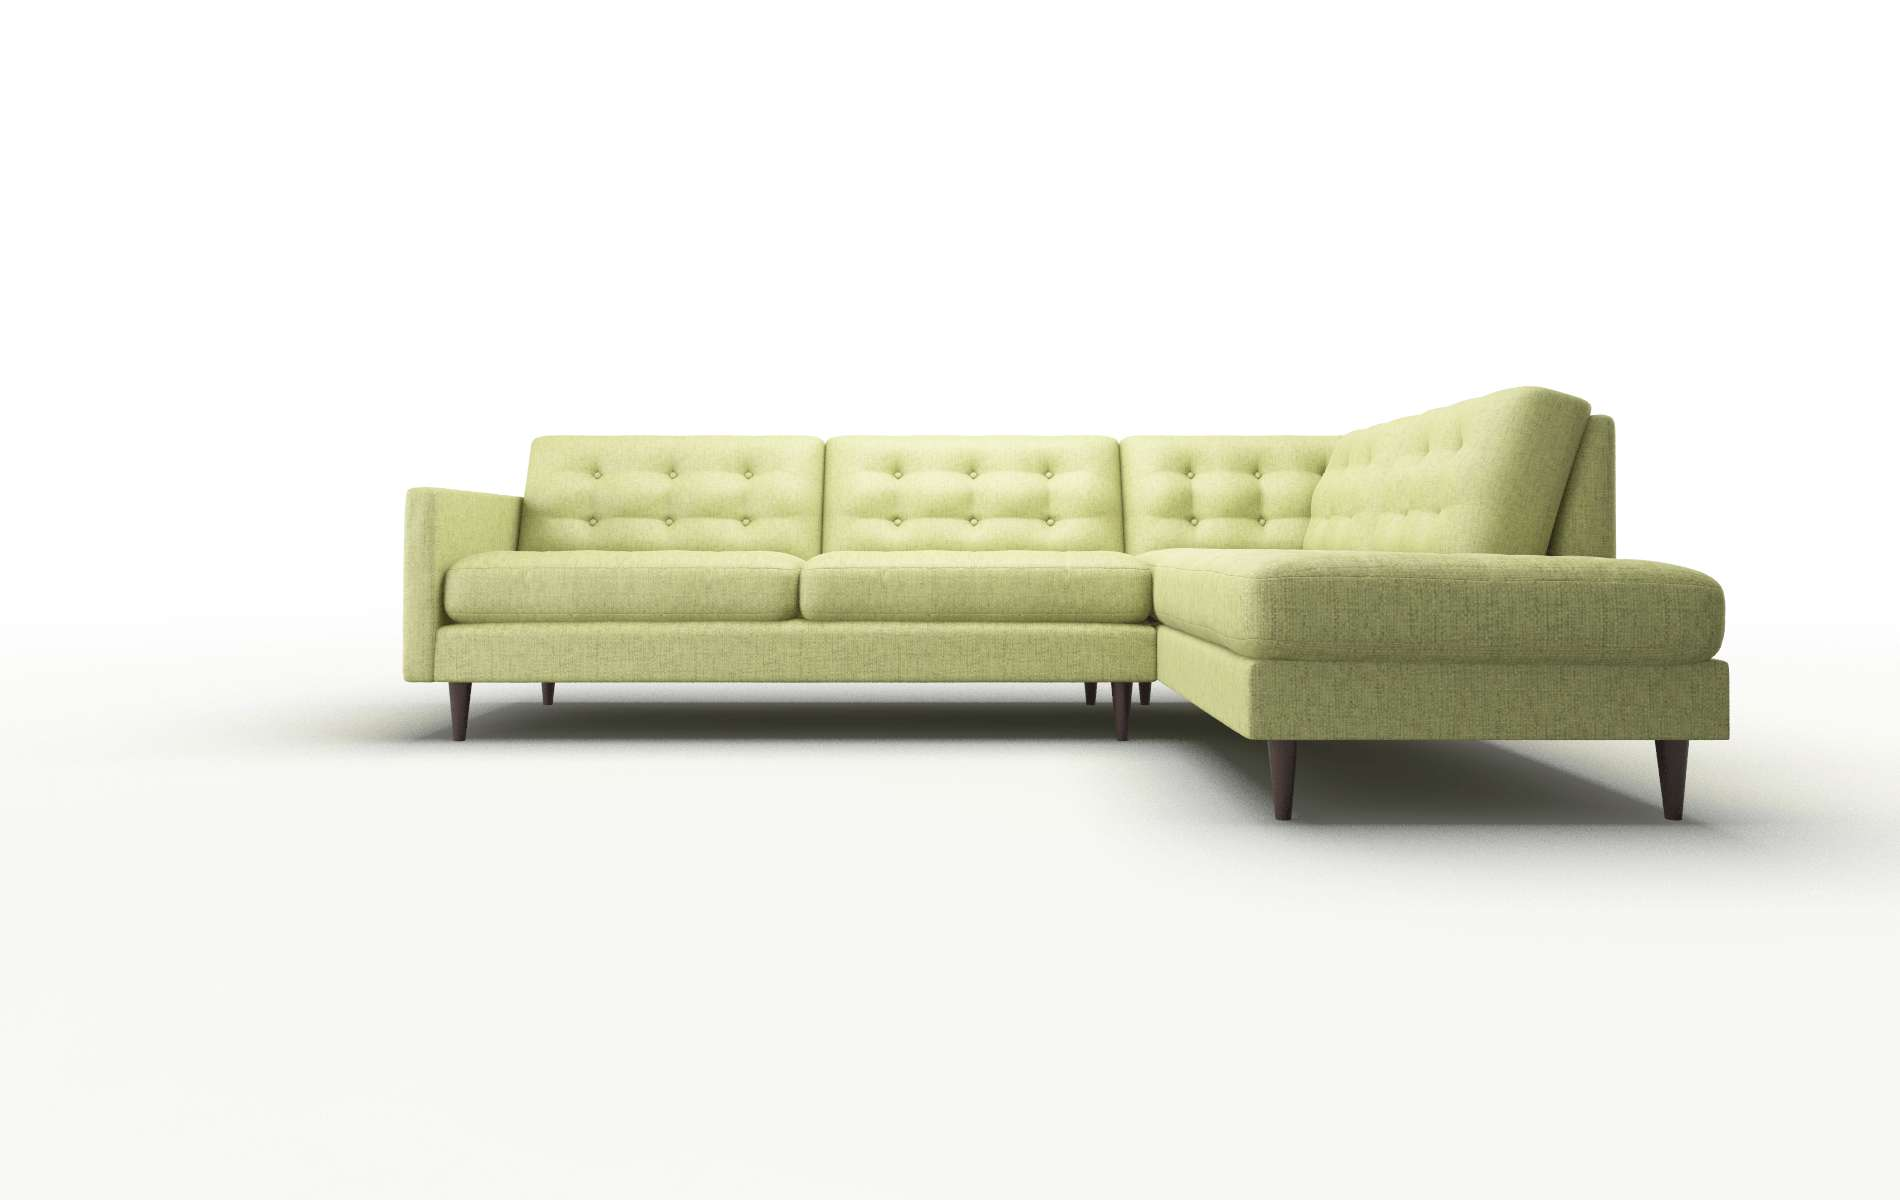 Oslo Notion Appletini chair espresso legs